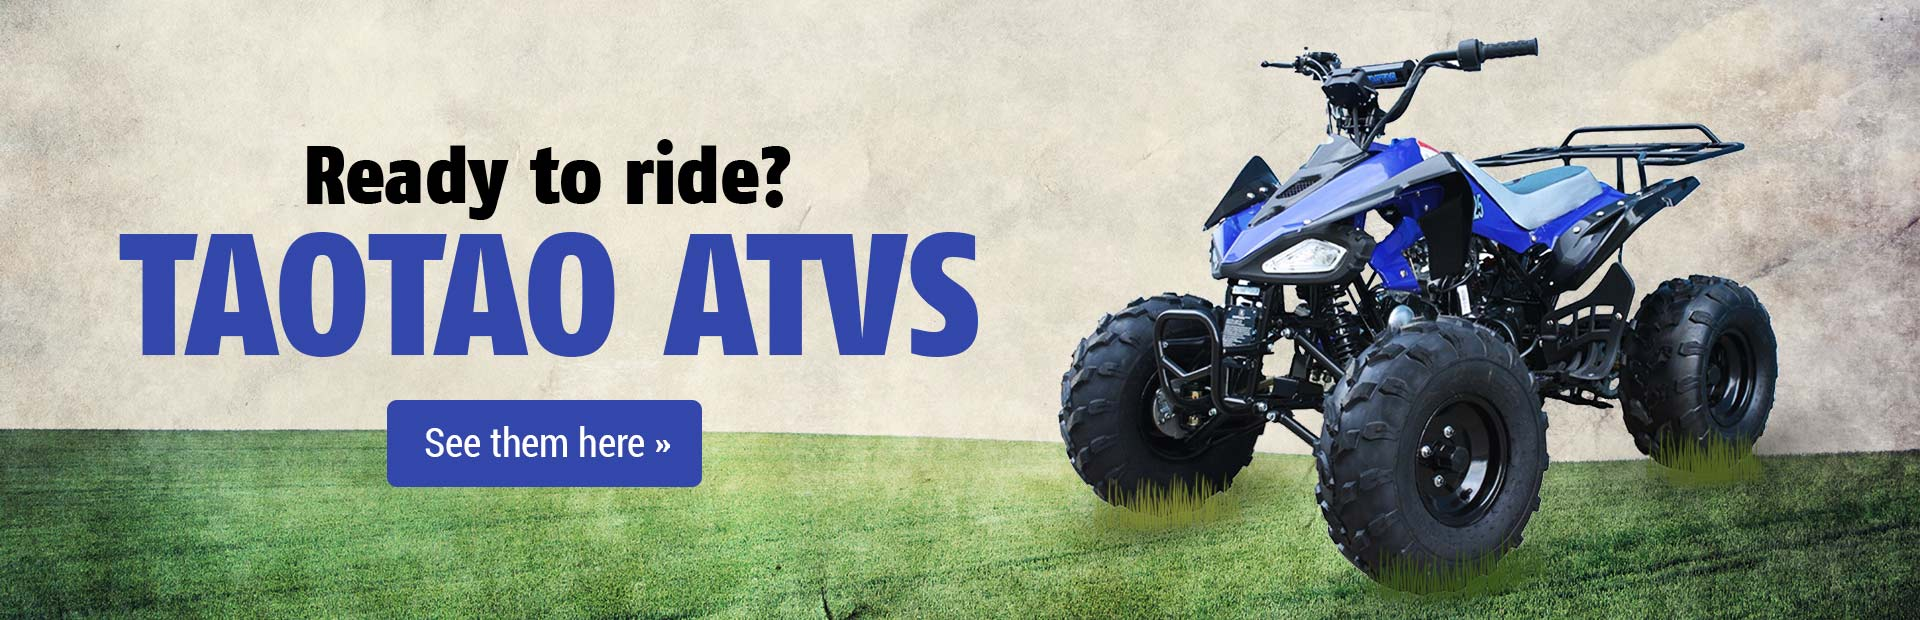 TAOTAO ATVs: Click here to view the models.